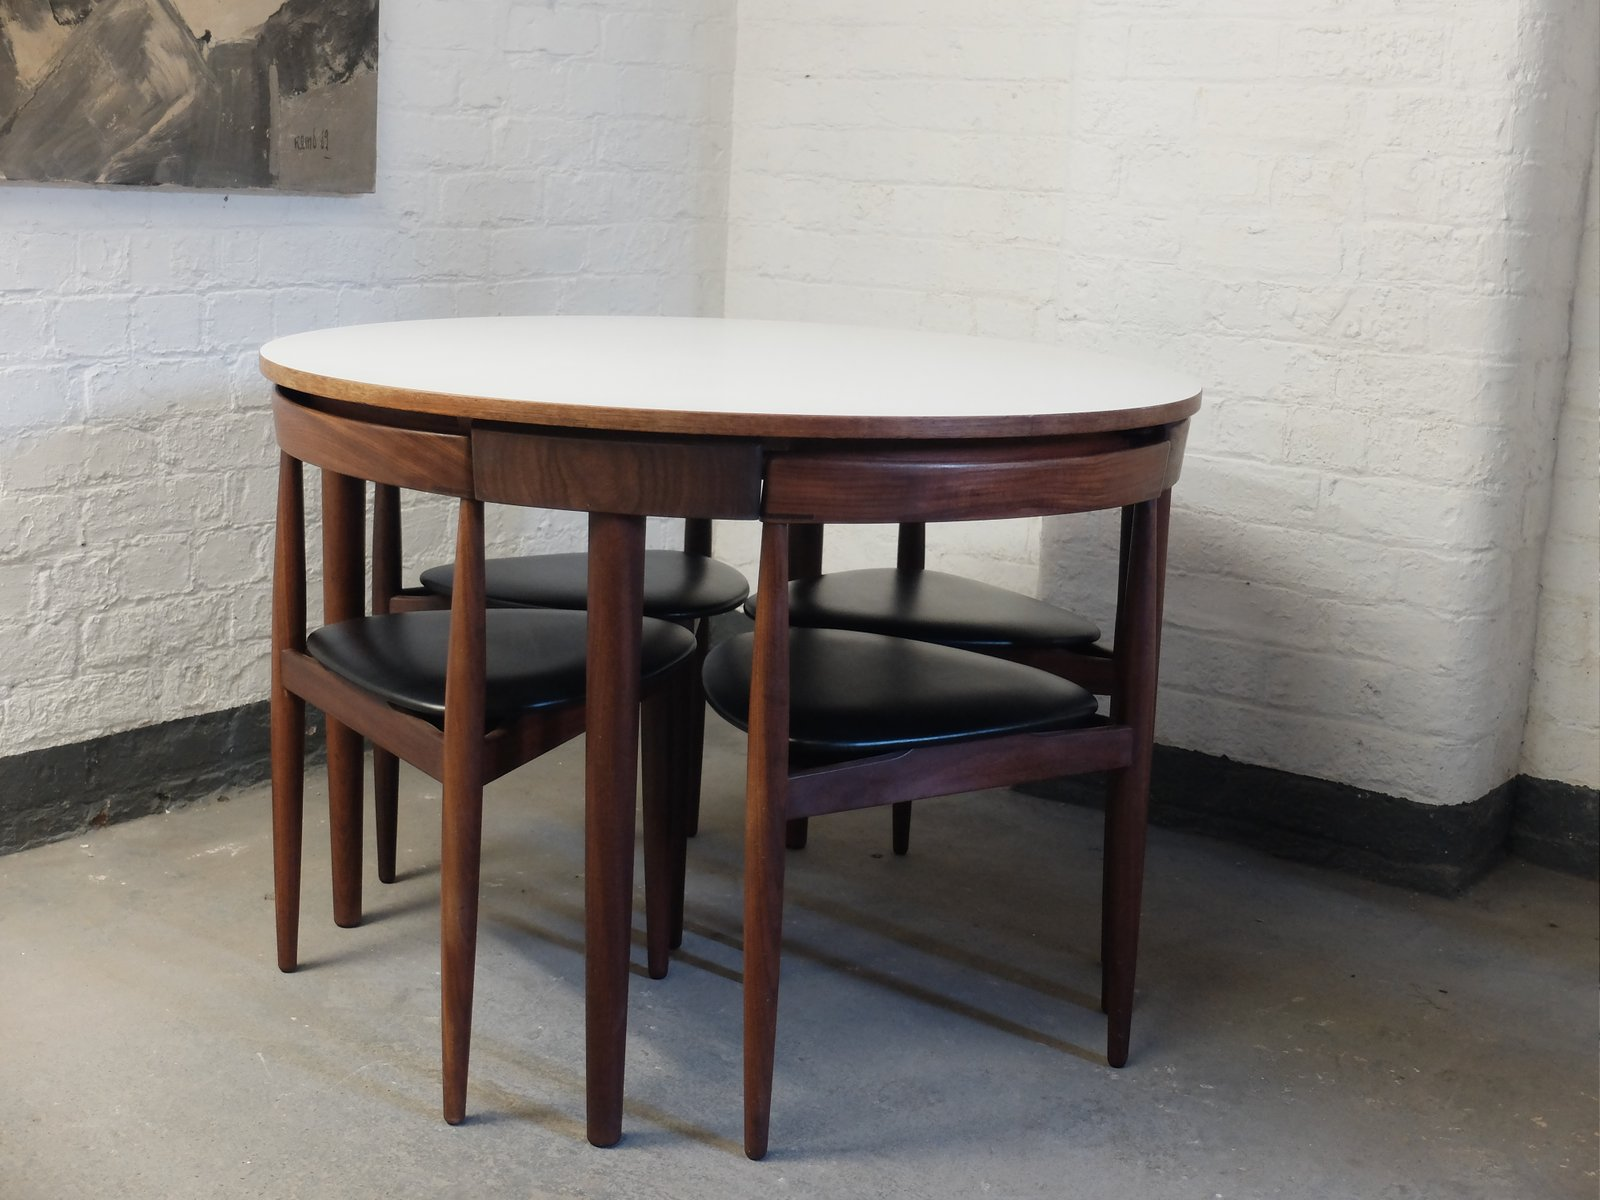 Mid Century Roundette 630 Dining Table & Chairs by Hans Olsen for